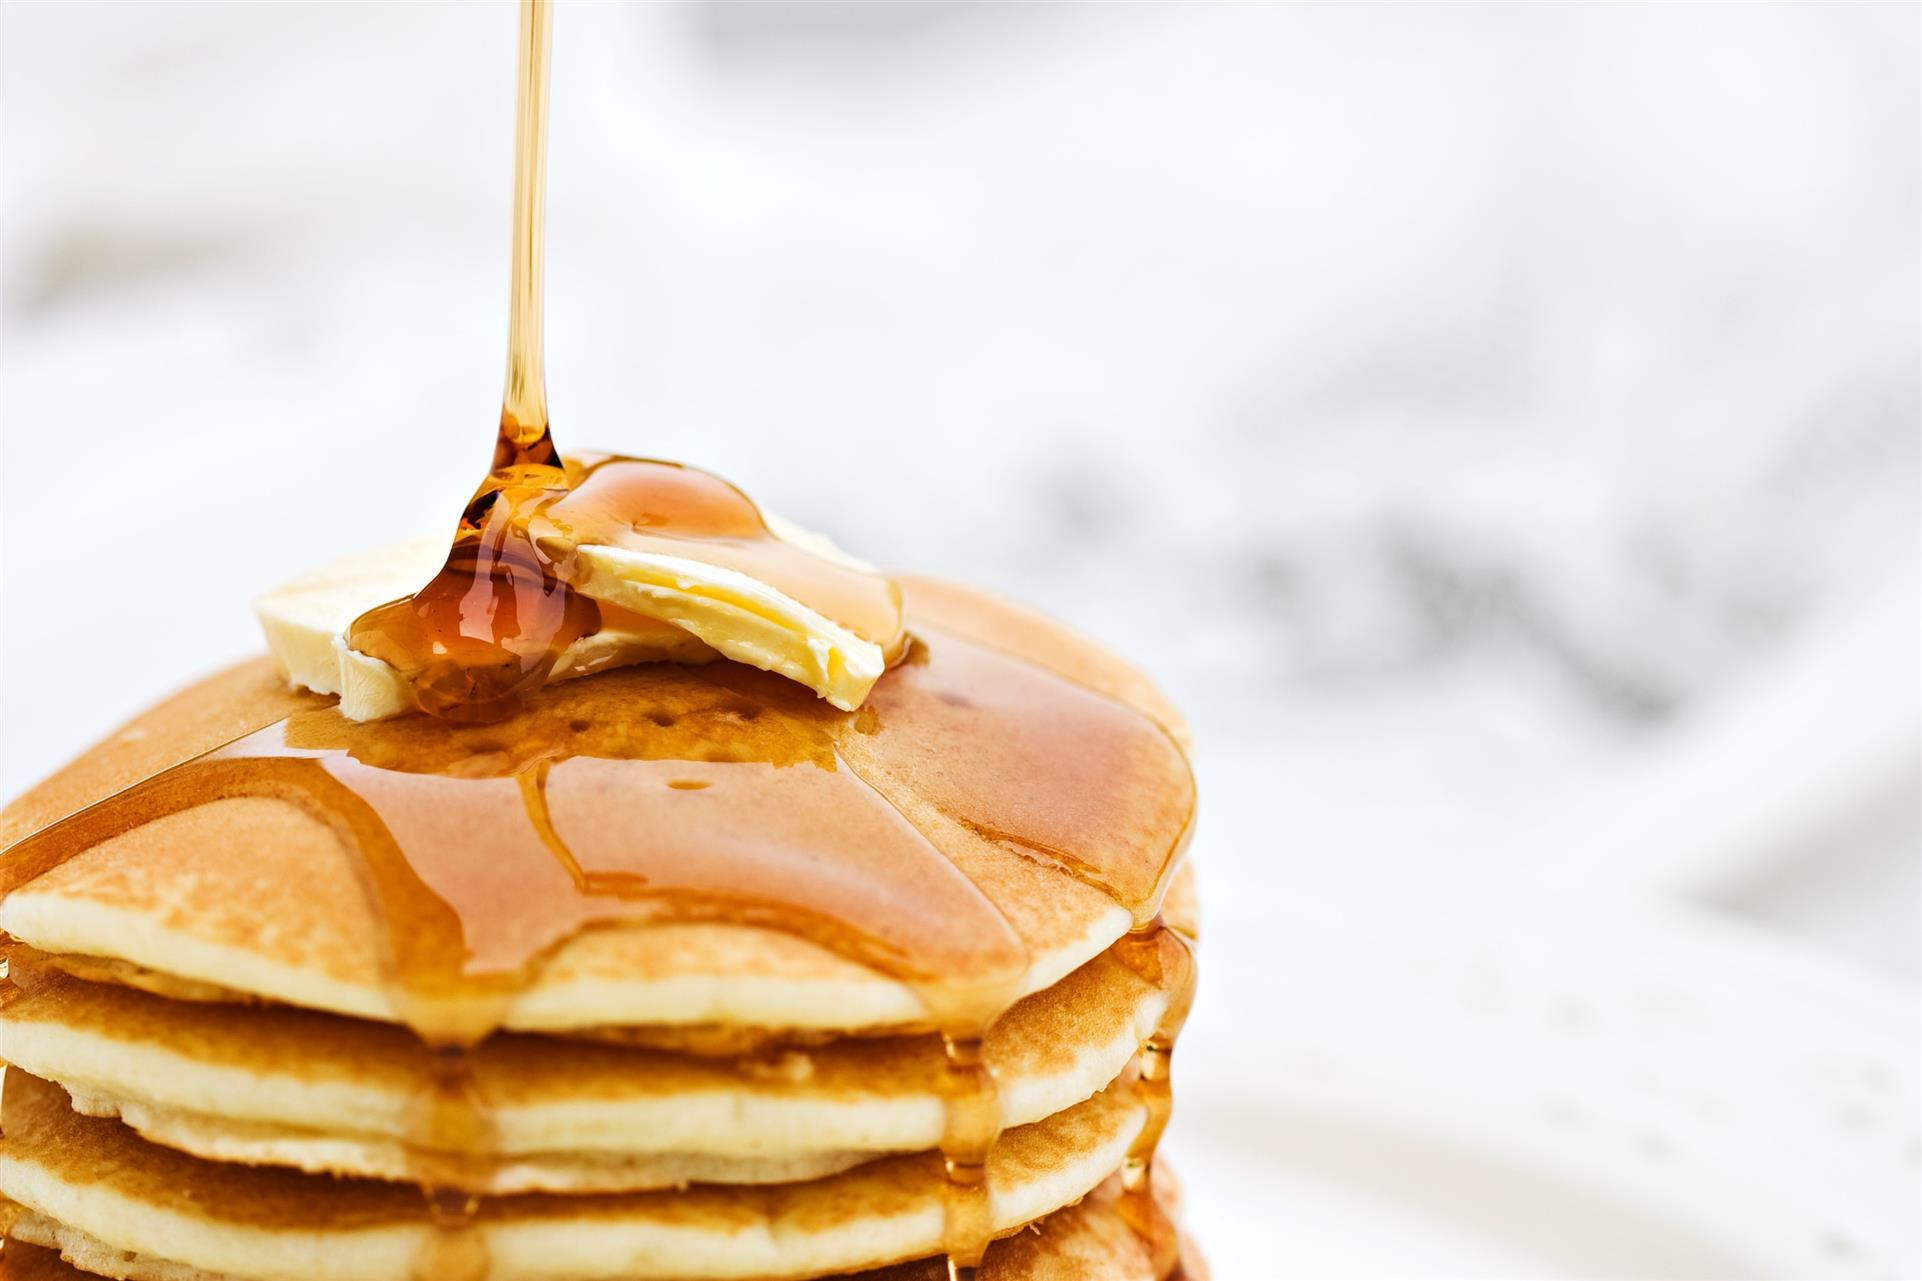 stack of pancakes topped with butter and pancakes